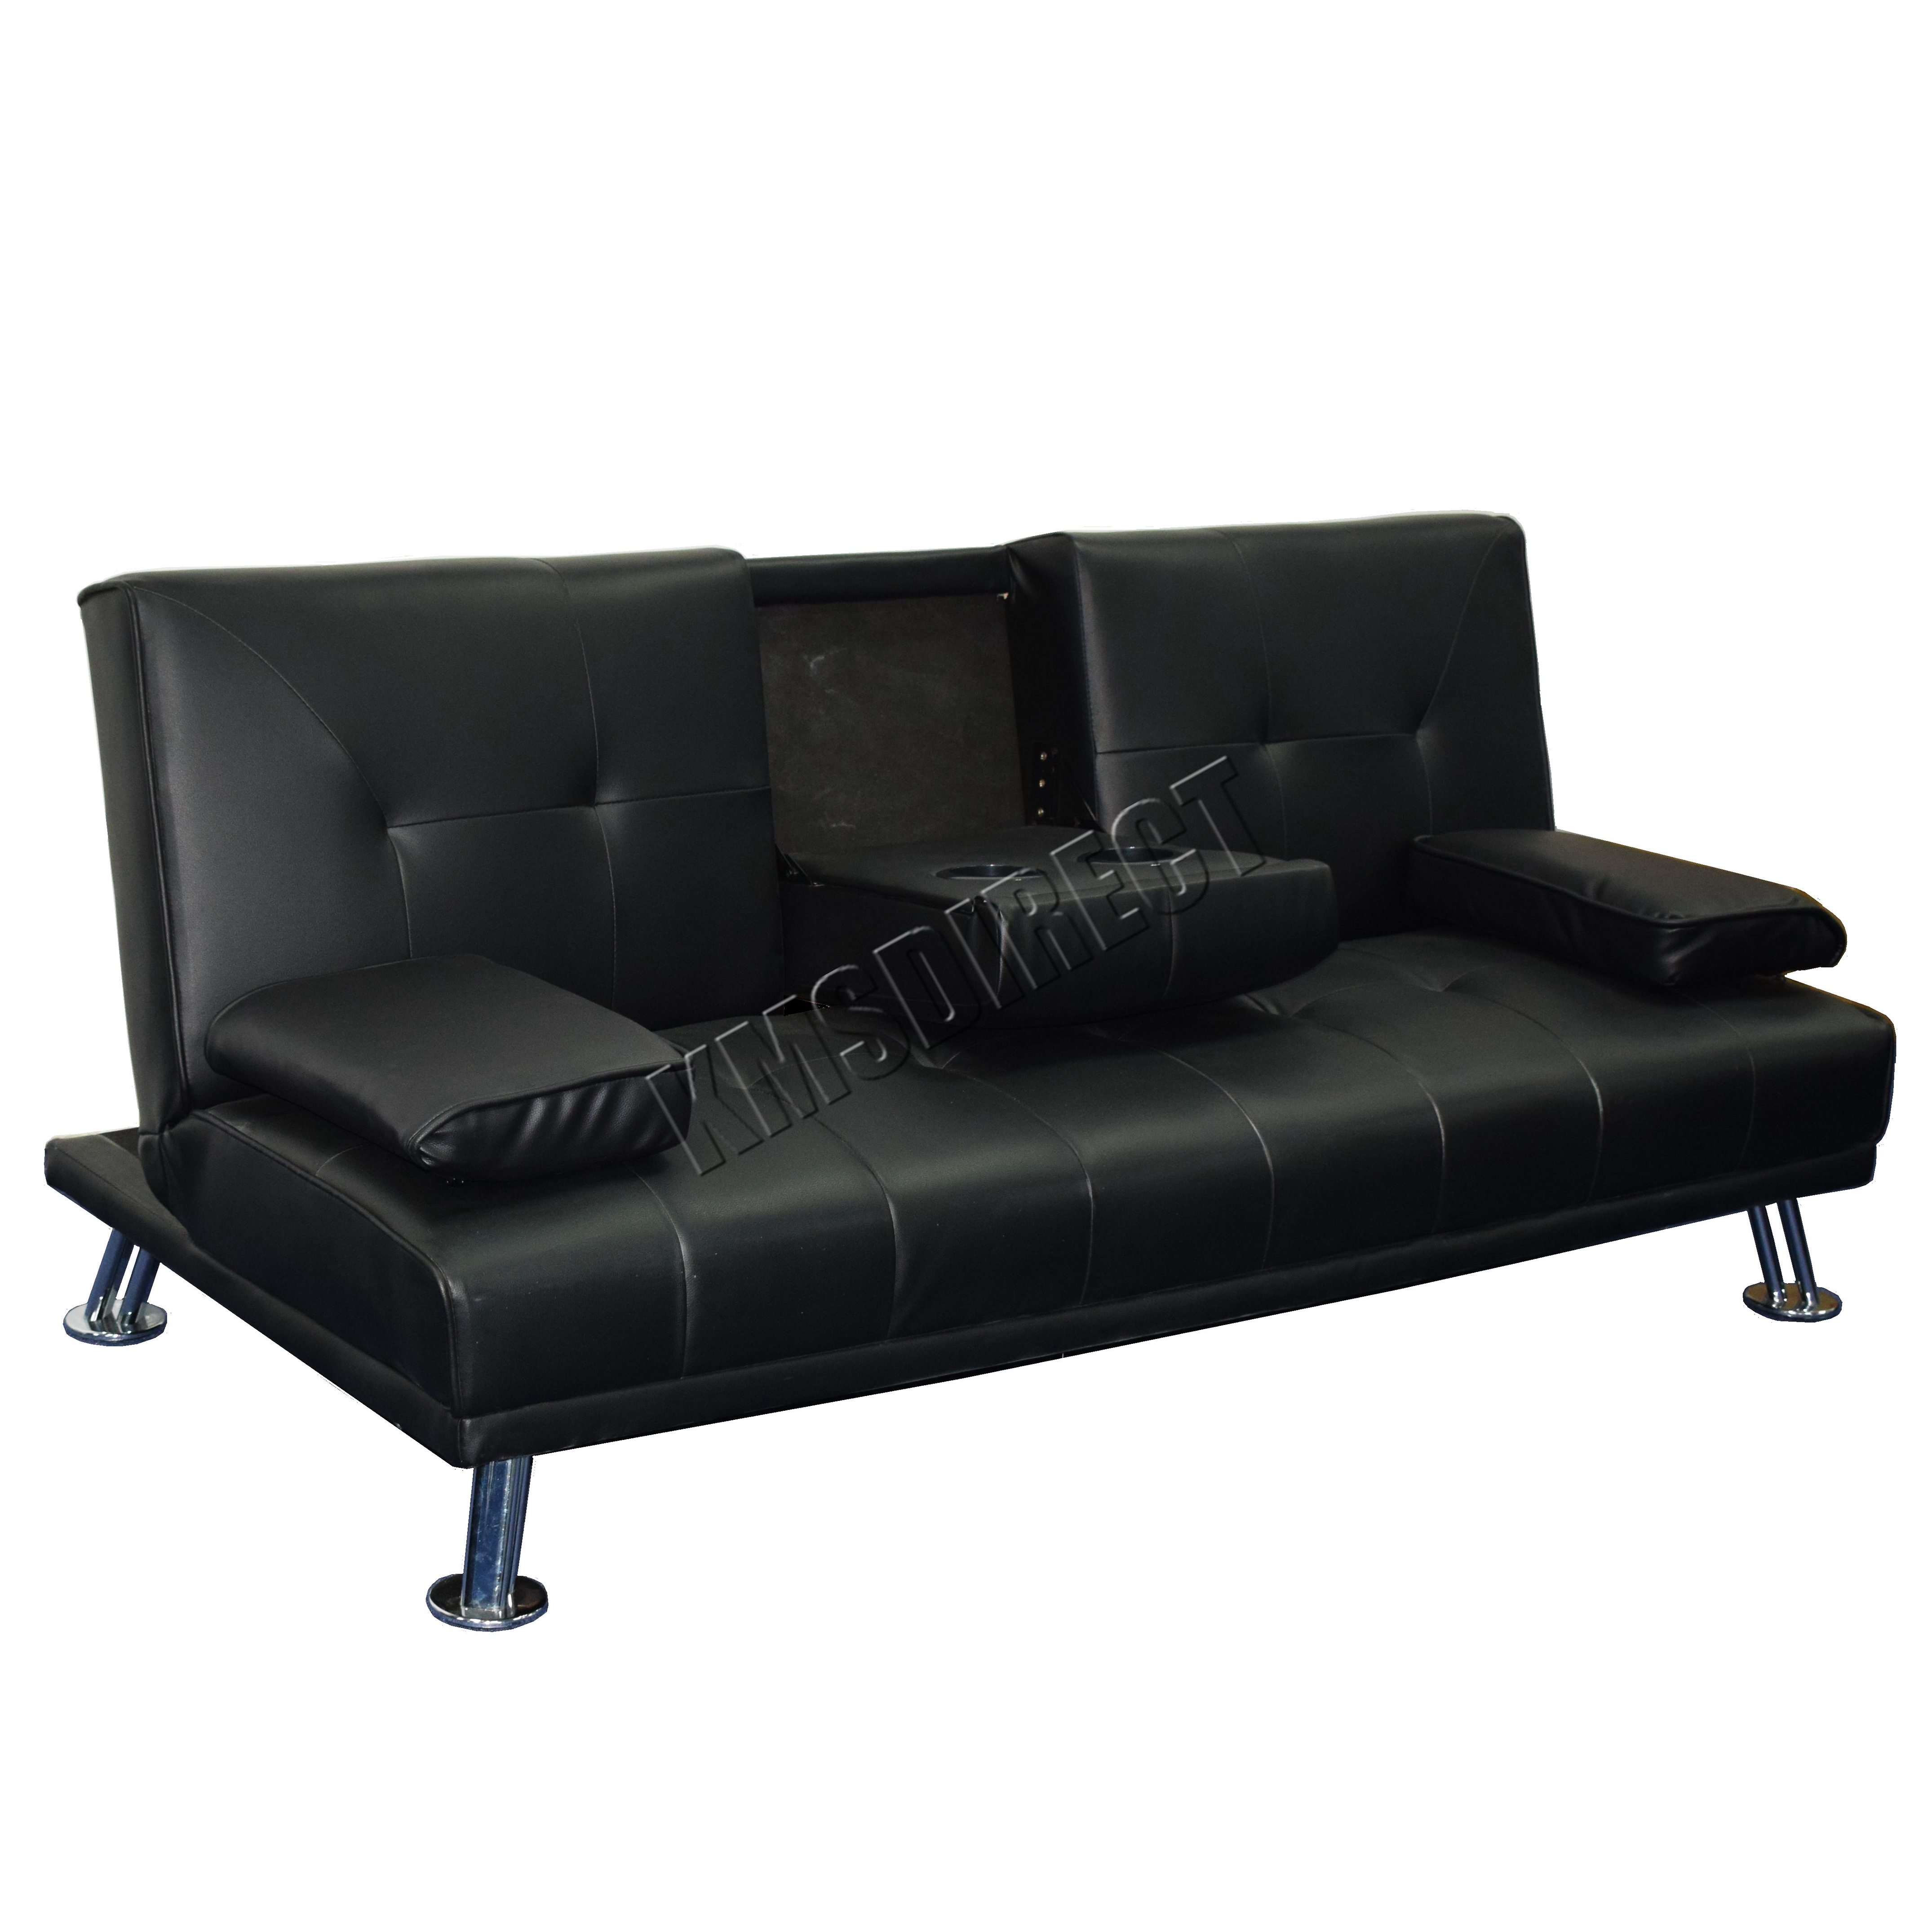 next day sofas customer reviews cheap black leather for sale westwood faux manhattan sofa bed recliner 3 seater